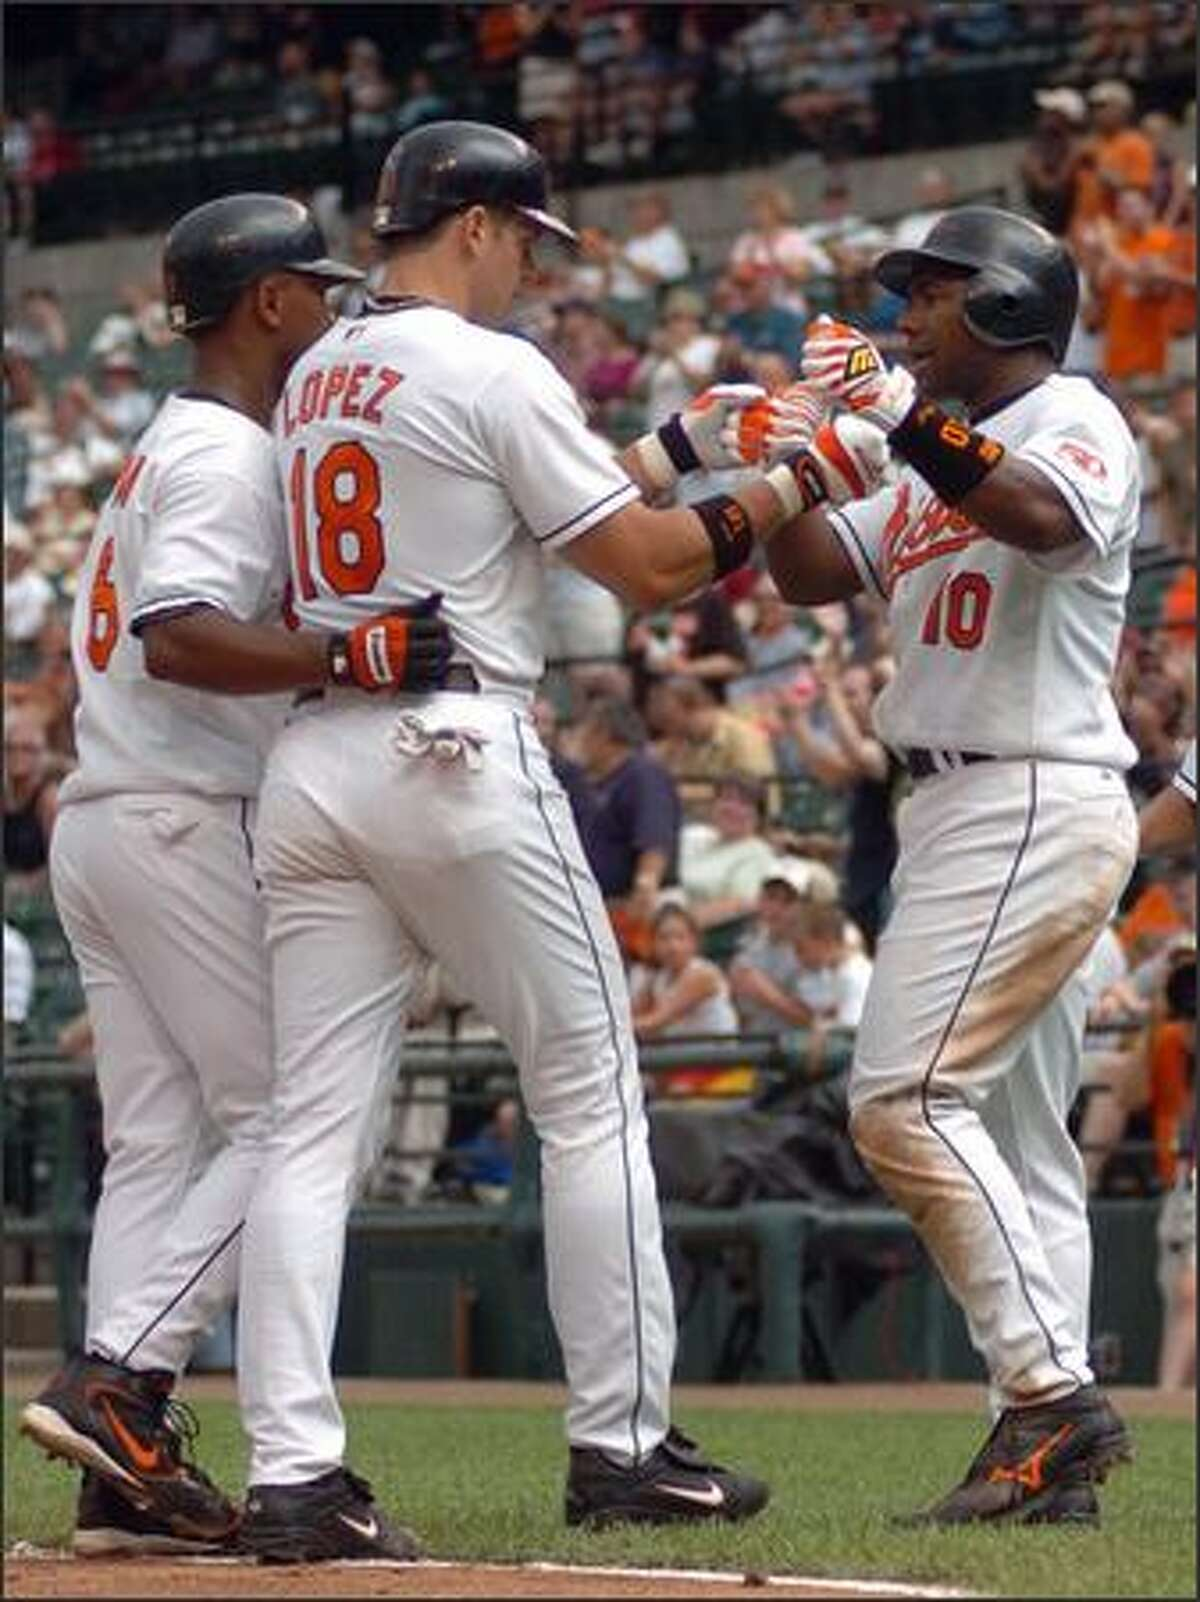 Baltimore Orioles' Javy Lopez (18) is congratulated by teammates Melvin Mora and Miguel Tejada (10) after hitting a three-run homer off Seattle's Ron Villone in the third inning of Game 1 of their double header. The Orioles won, 9-7. (AP Photo/Gail Burton)